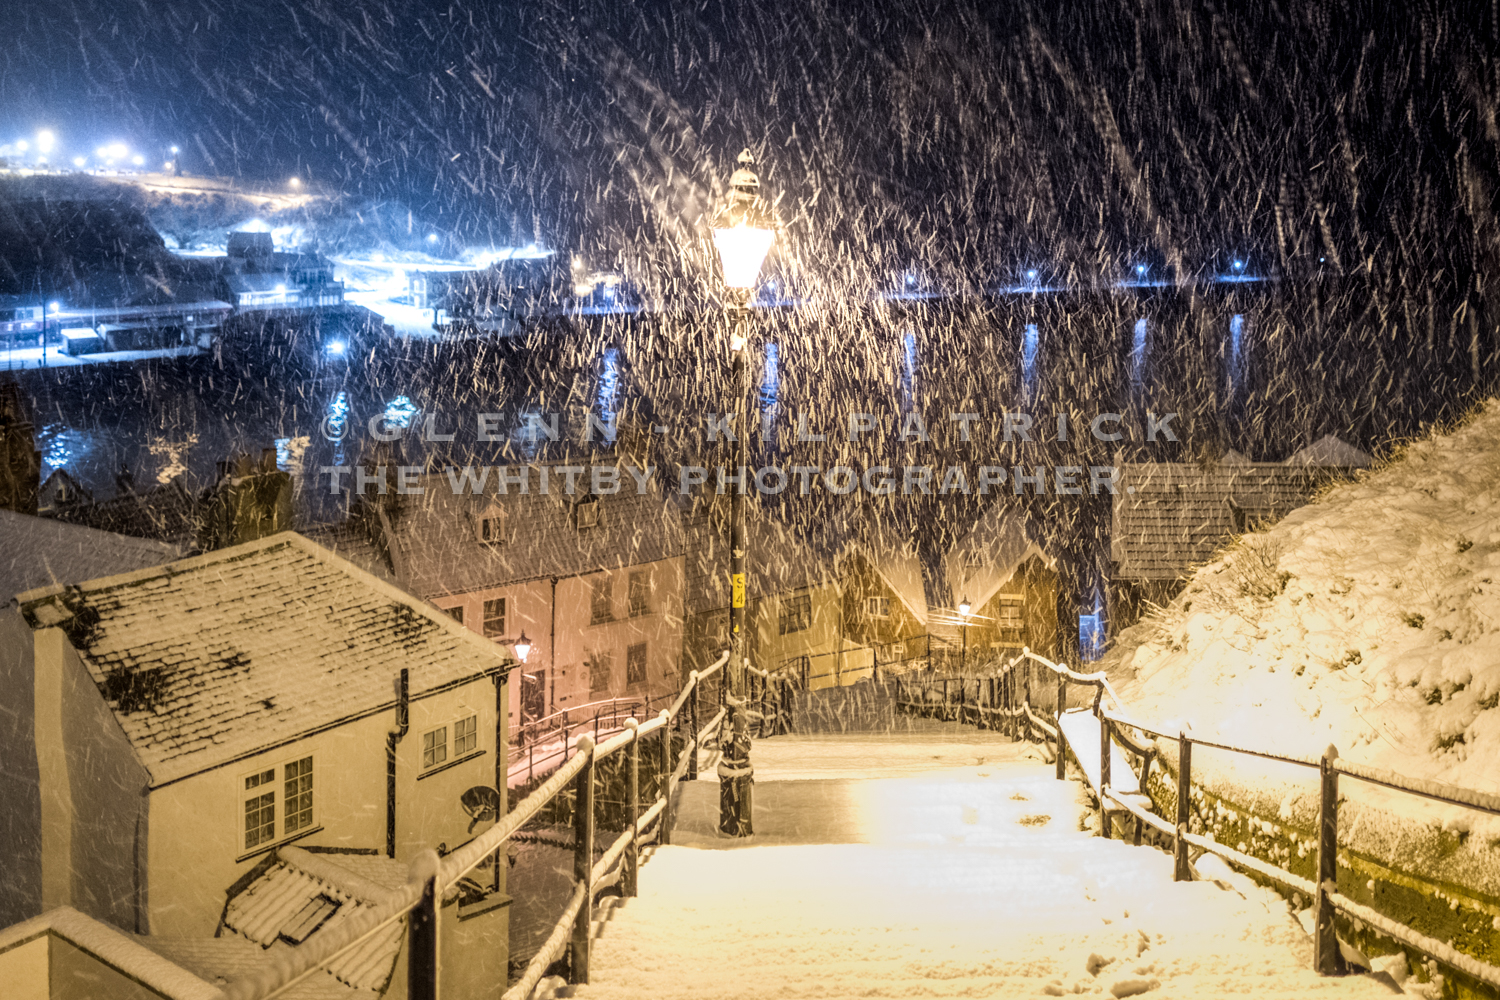 199 Snowy Steps In Colour - Whitby Snow Scenes